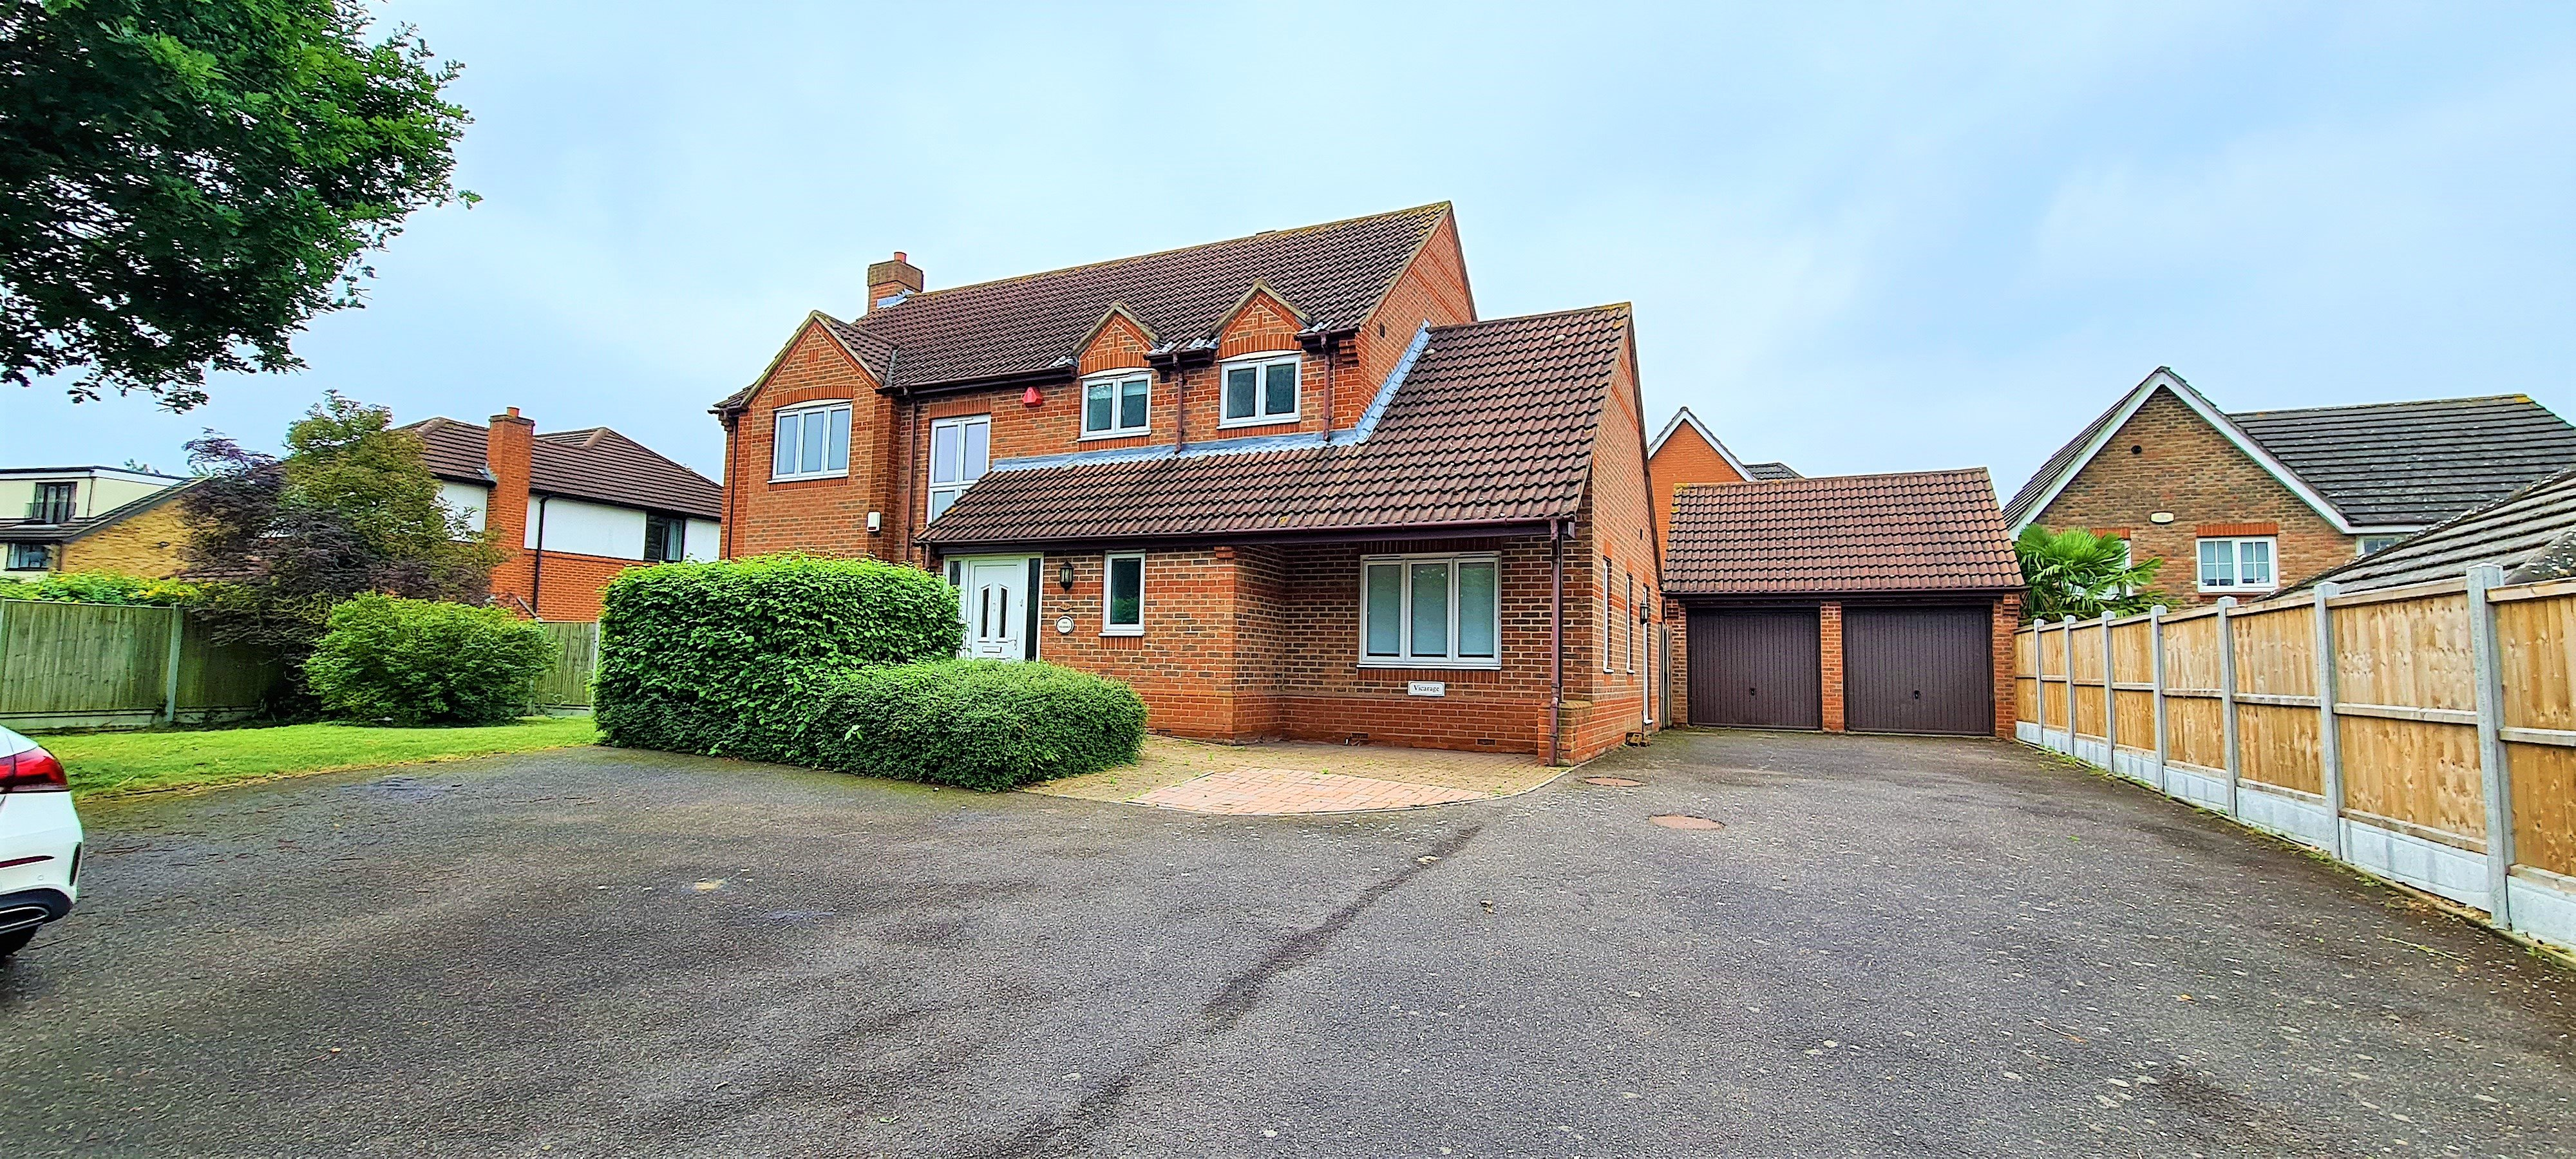 4 bed detached house to rent in Chafford Hundred, Grays - Property Image 1